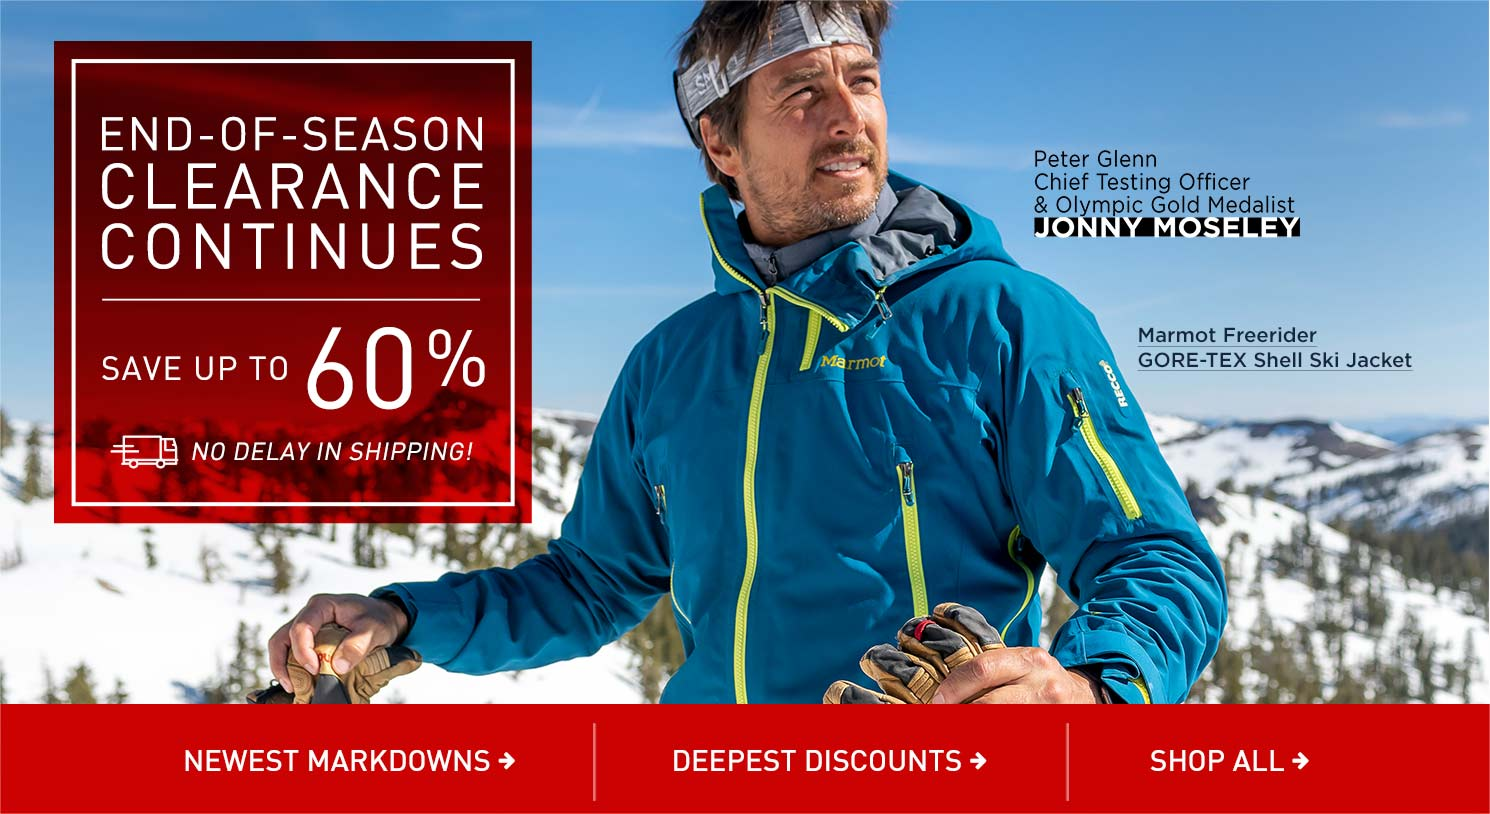 Save up to 60% Off End of Season Clearance